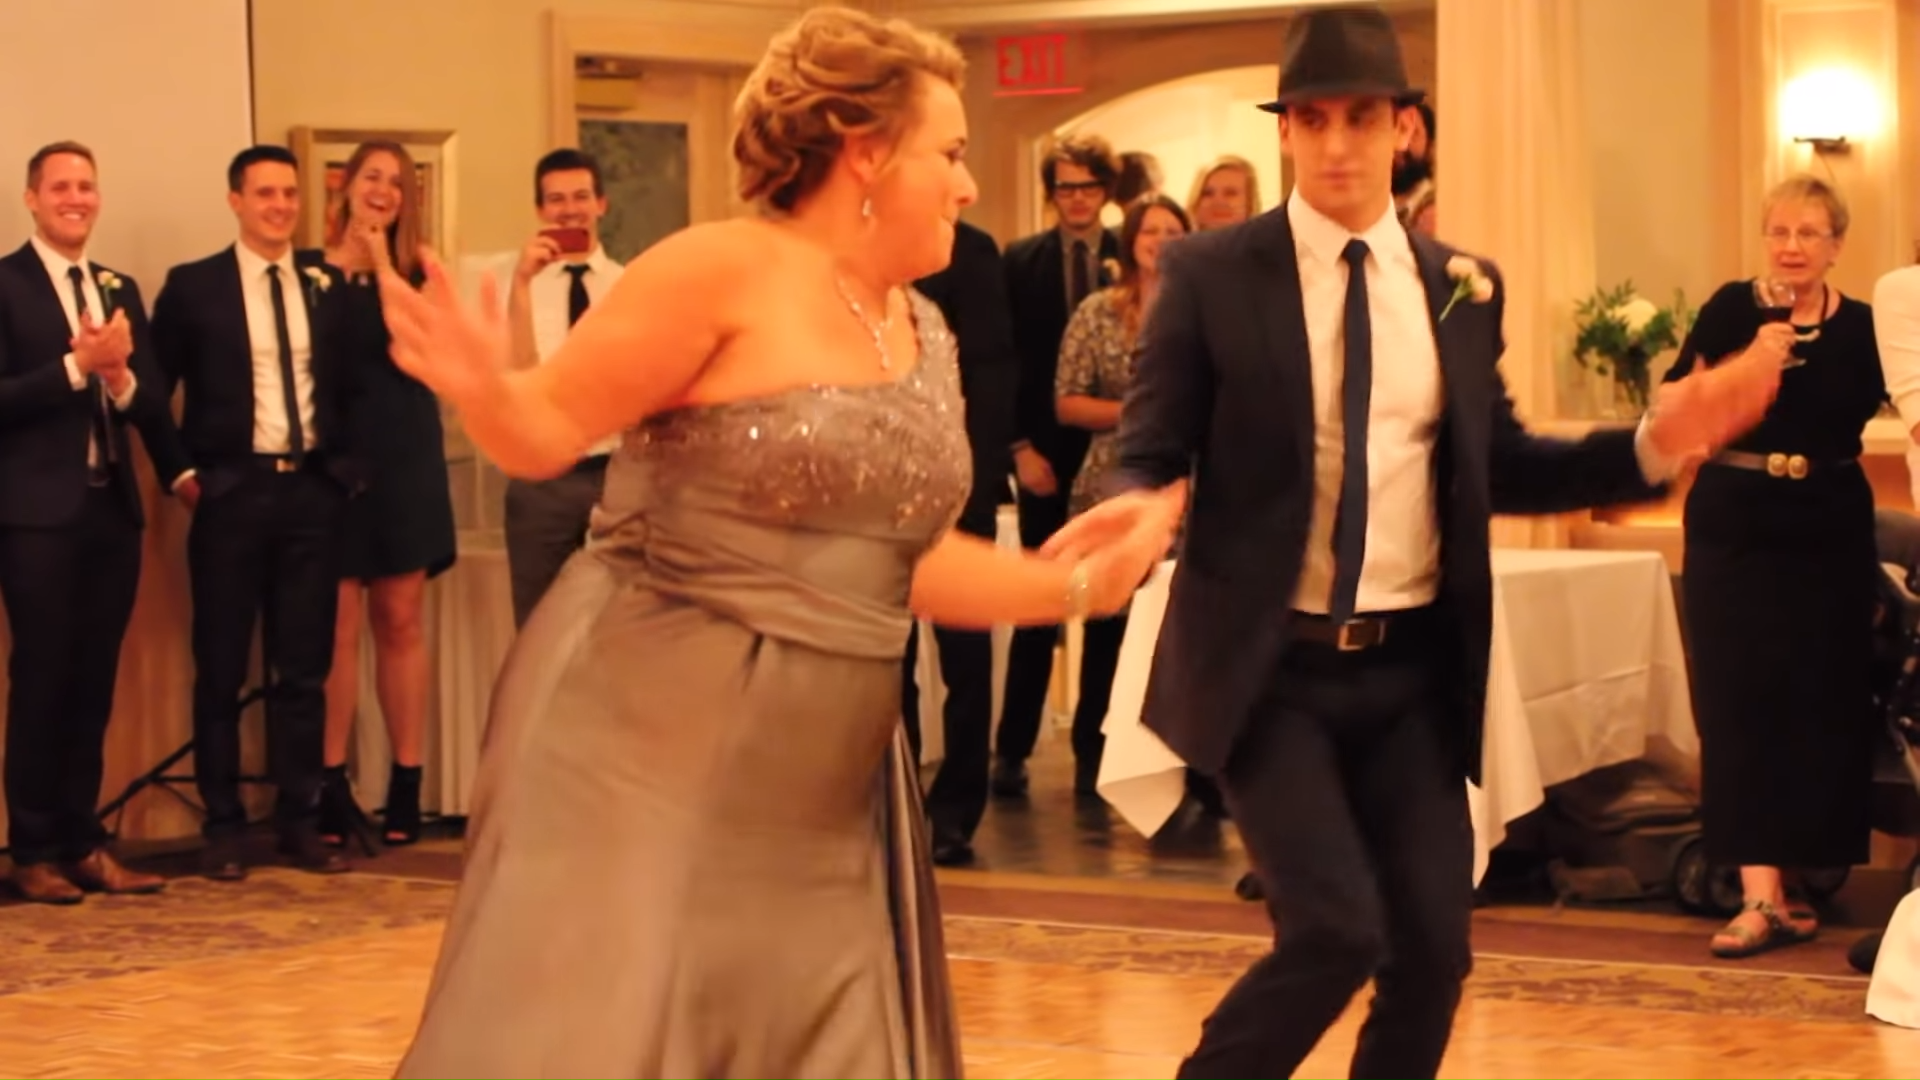 Mom Dances With Her Son During His Wedding Day But Their